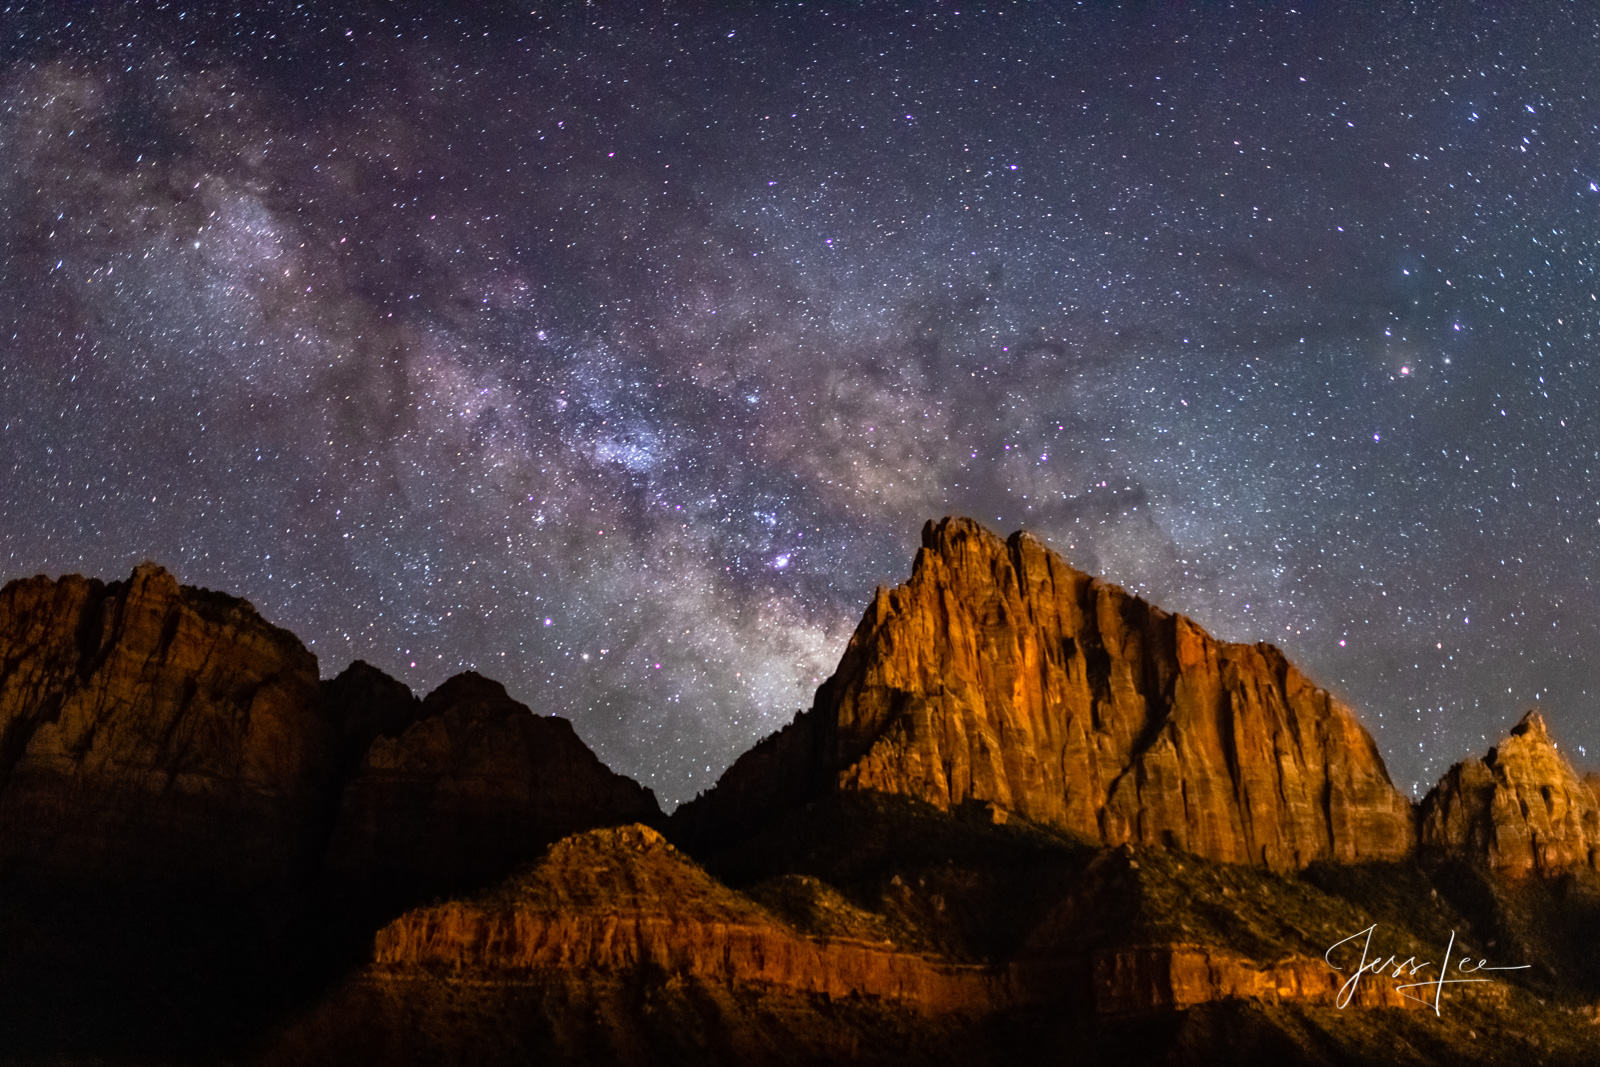 Limited Edition of 200 Exclusive high-resolution Museum Quality Fine Art Prints of the Night Sky at Zion. Photos copyright ©...